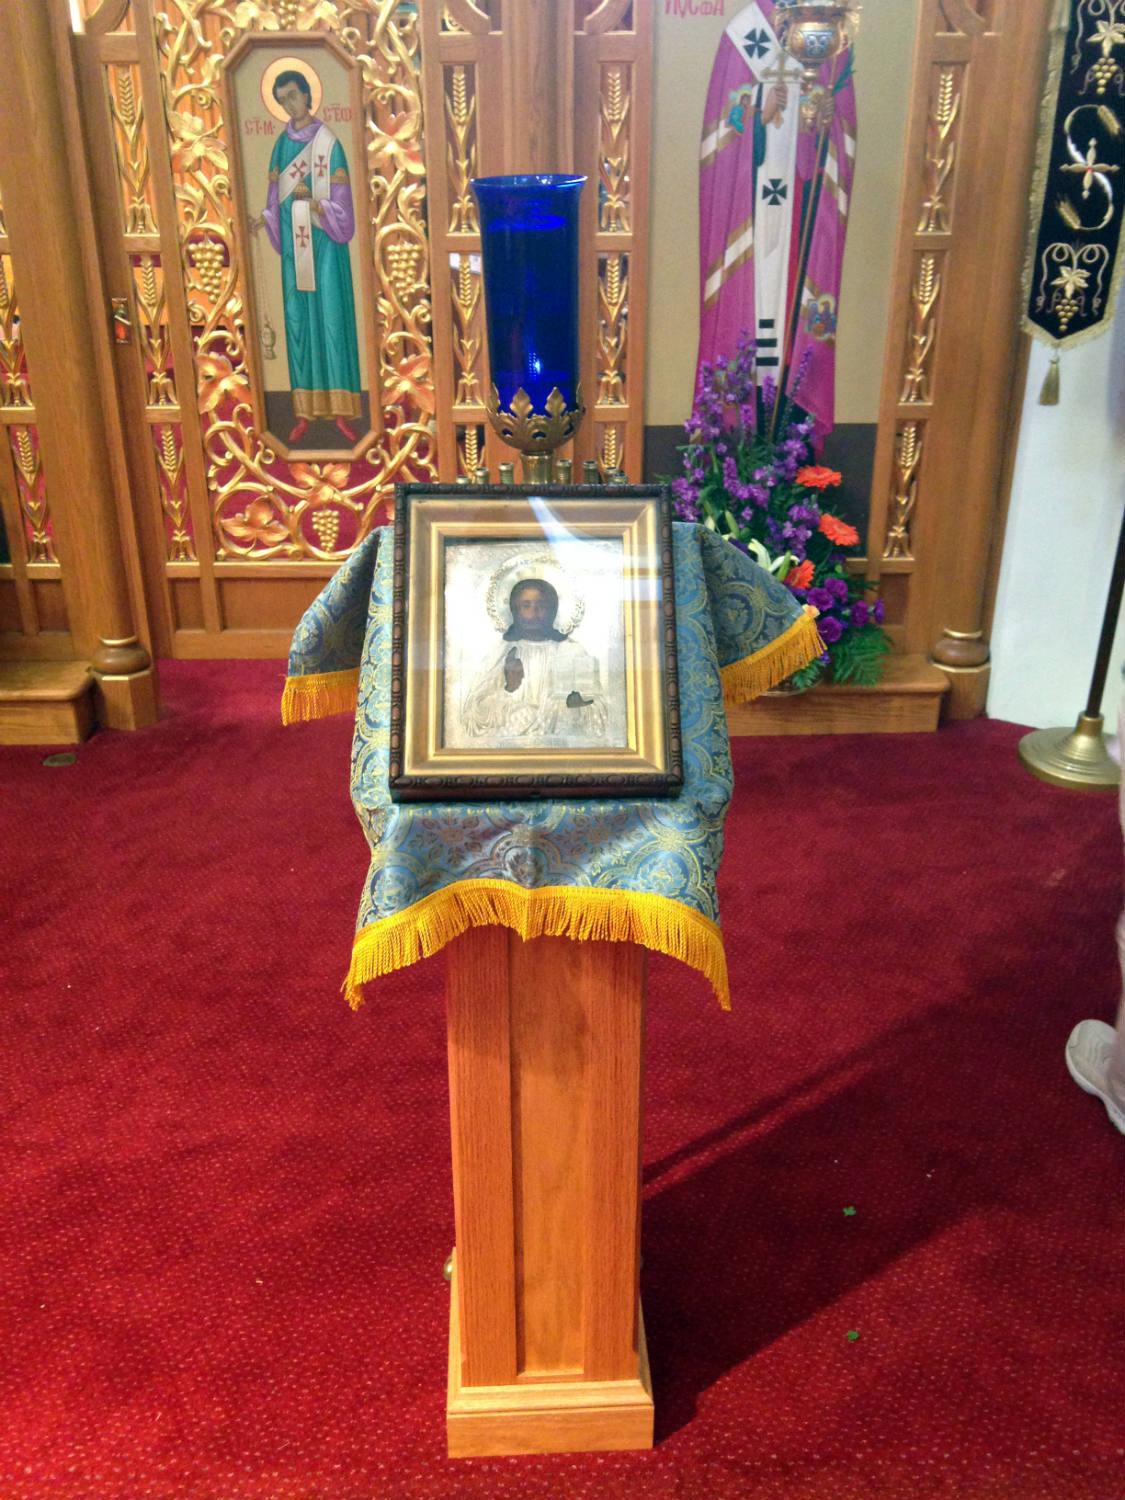 Icon at St. Josaphat's Ukrainian Church in Rochester, NY